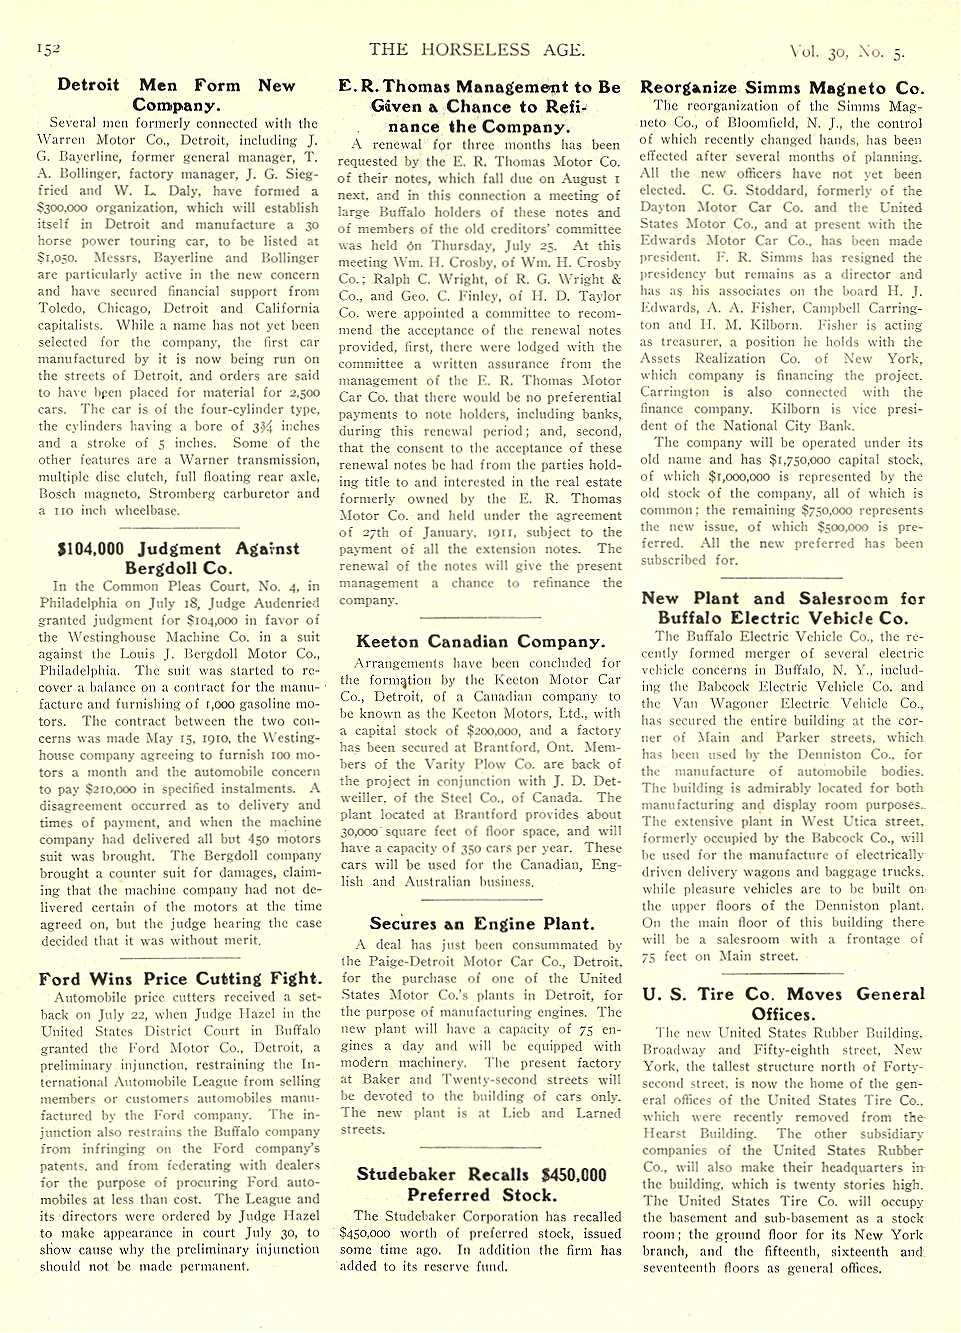 1912 7 31 BUFFALO Electric Article New Plant and Salesroom for Buffalo Electric Vehicle Co. THE HORSELESS AGE July 31, 1912 University of Minnesota Library 8.5″x11.5″ page 152